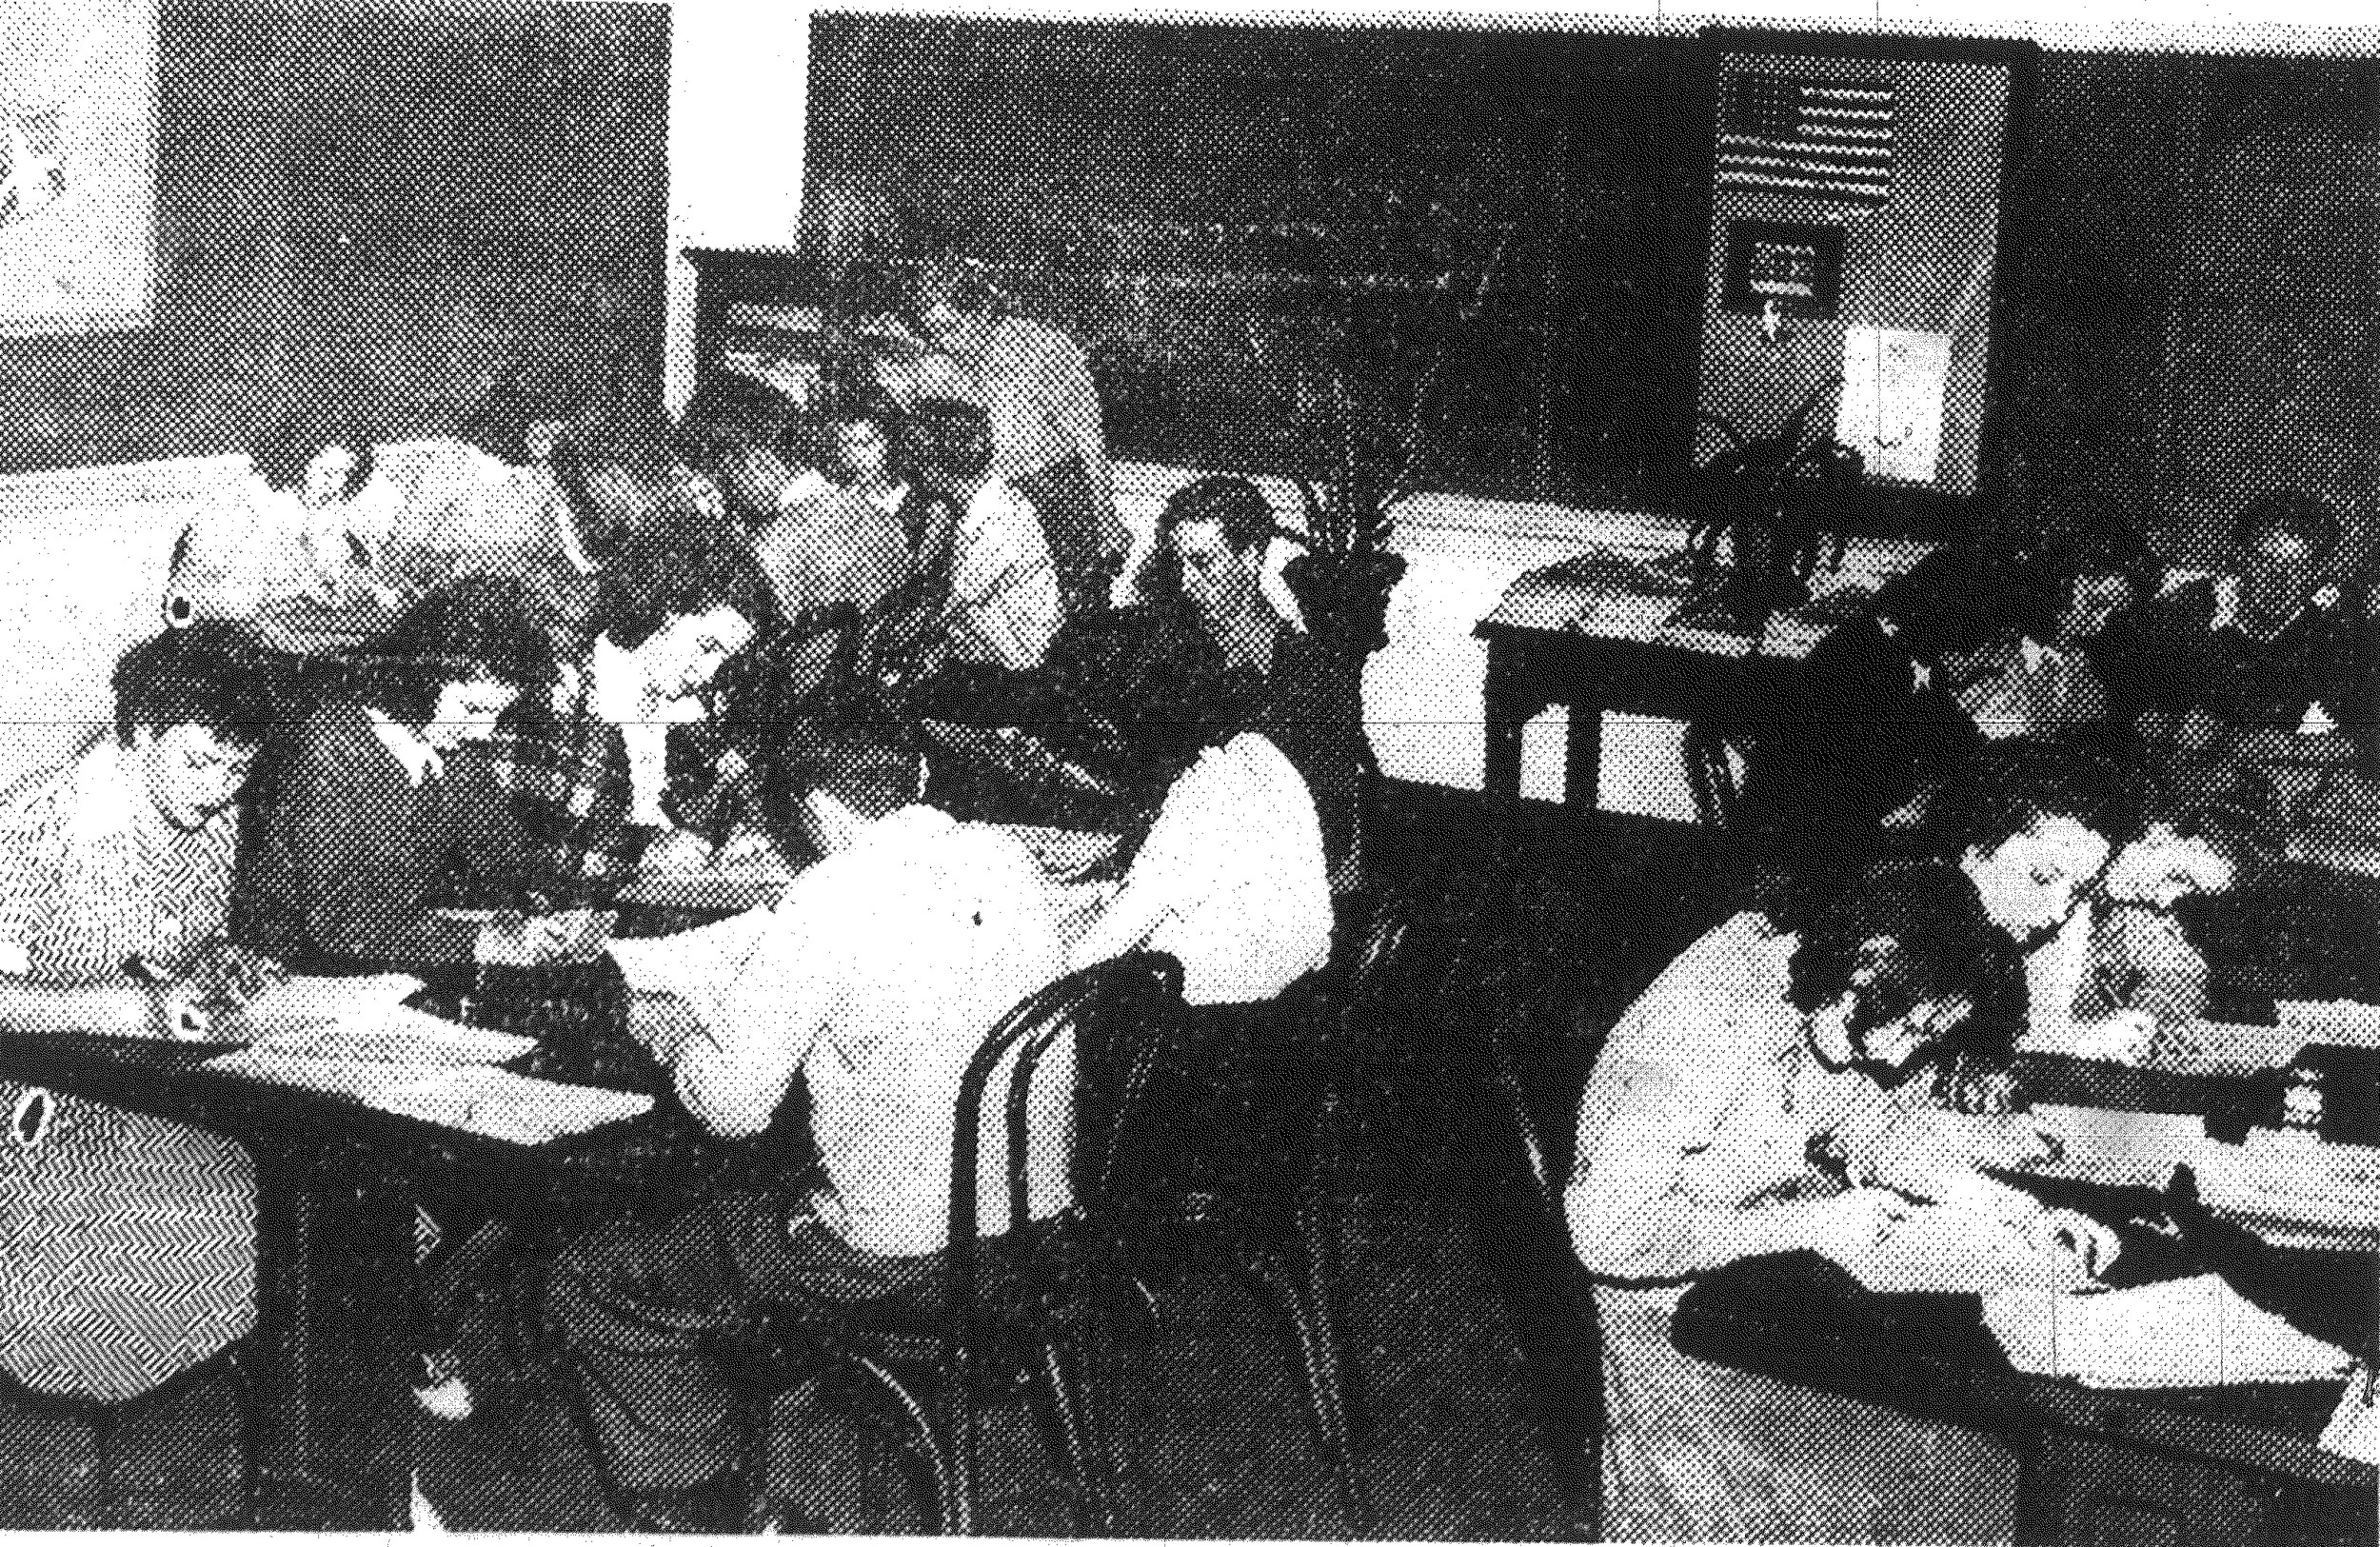 1942 - Pupils of Mrs. Pringle Brunson's modern problems class at Edmunds High School are shown hard at work in the local ration board office helping with kerosene and fuel oil registration. The board is in need of help, and the students have been of invaluable assistance.